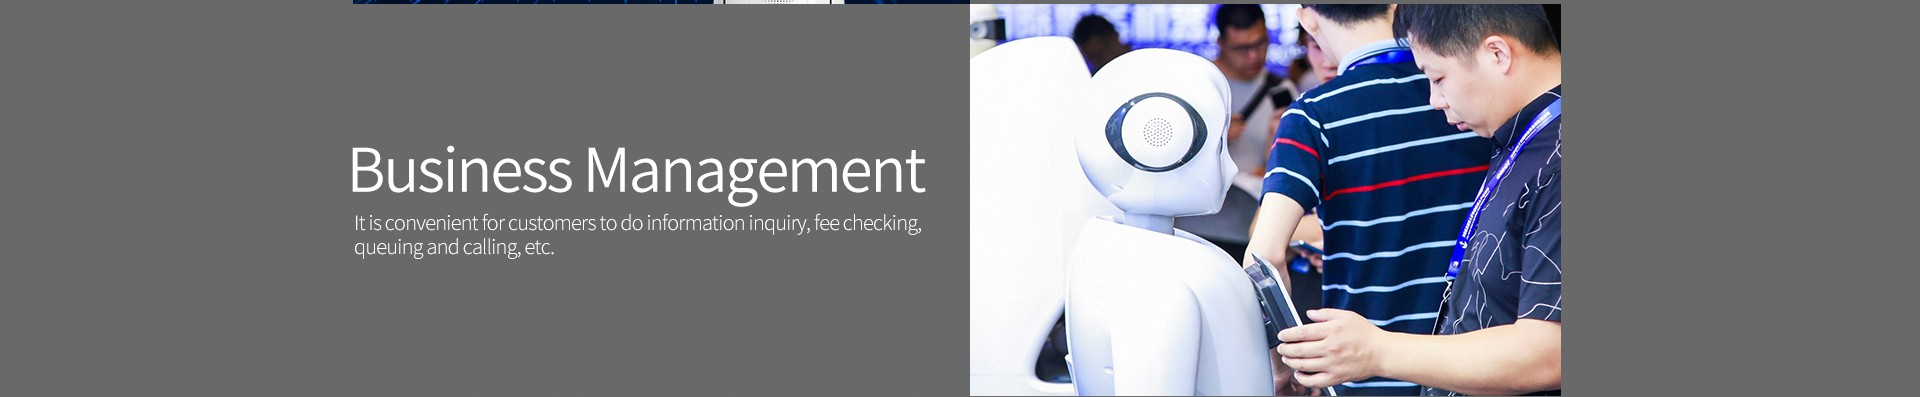 SIFROBOT-5.0 Business management feature